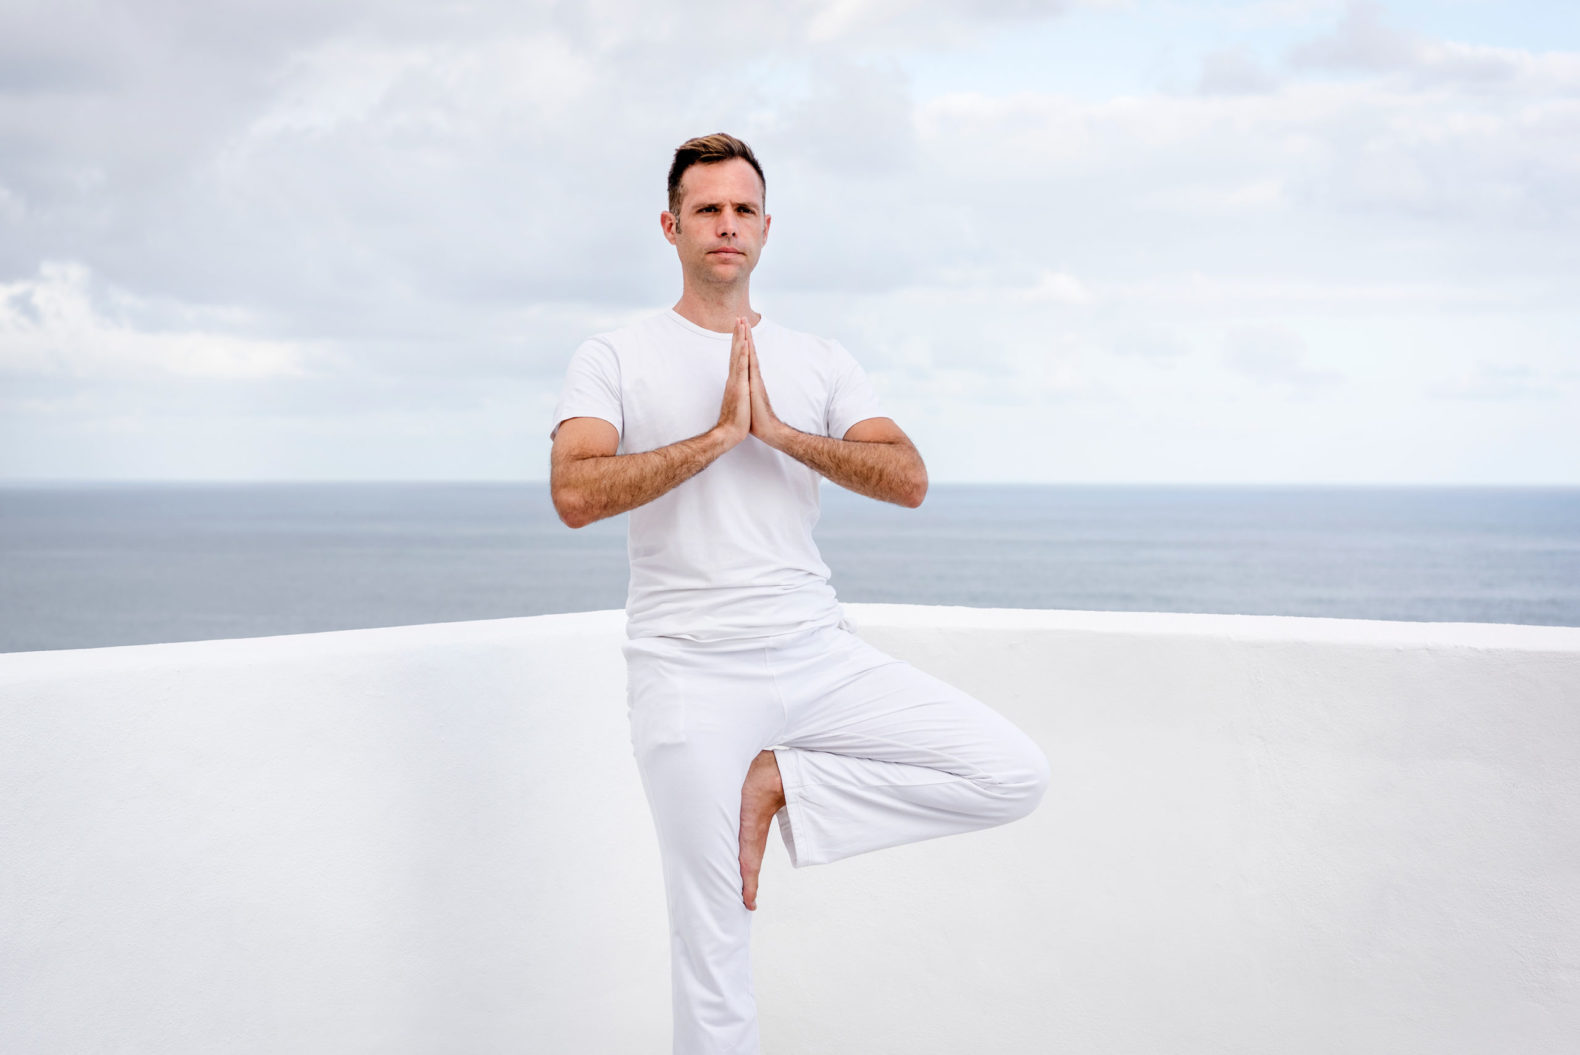 man-meditating-white-rooftop-sky-ocean-oceano-hotel-health-spa-tenerife-spain